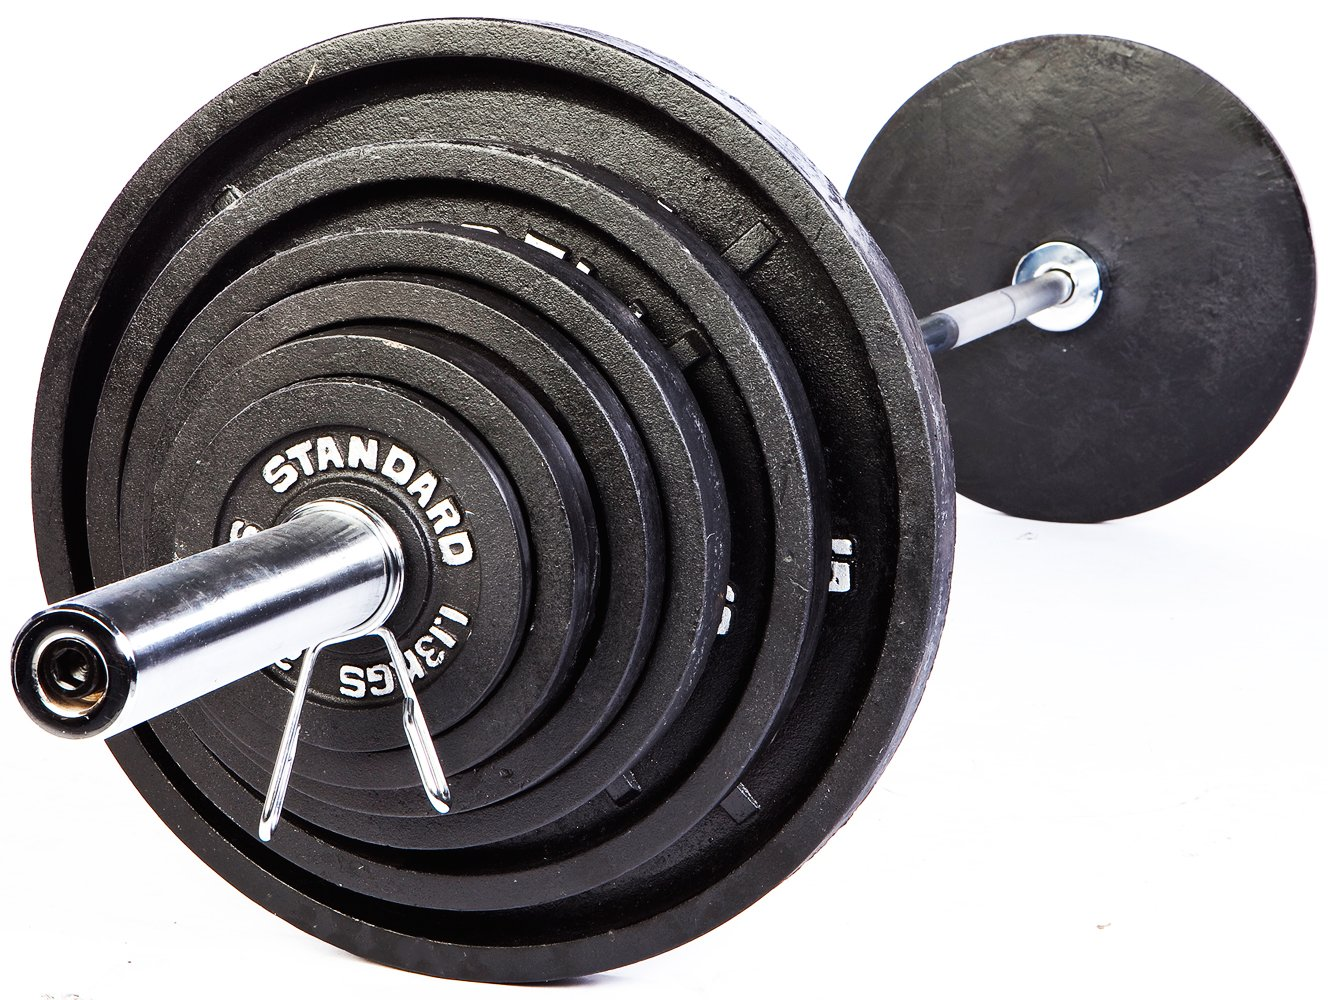 Troy USA Sports Standard Olympic Weight Plates Black - 500 LB Set